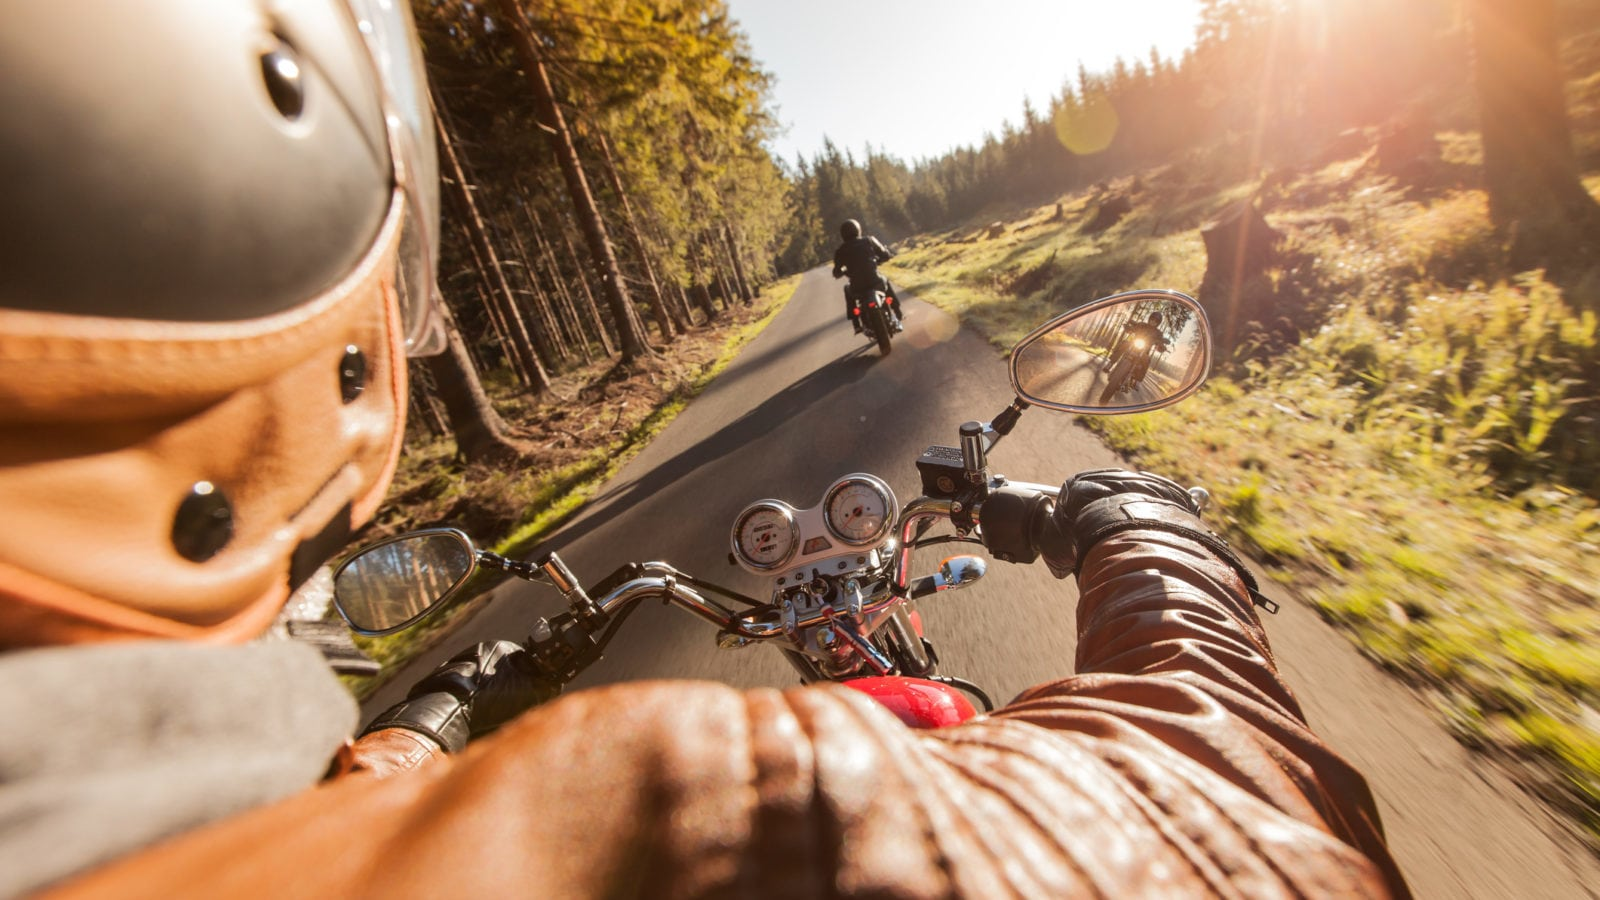 Motorcyclists Riding Motorcycles Together Stock Photo